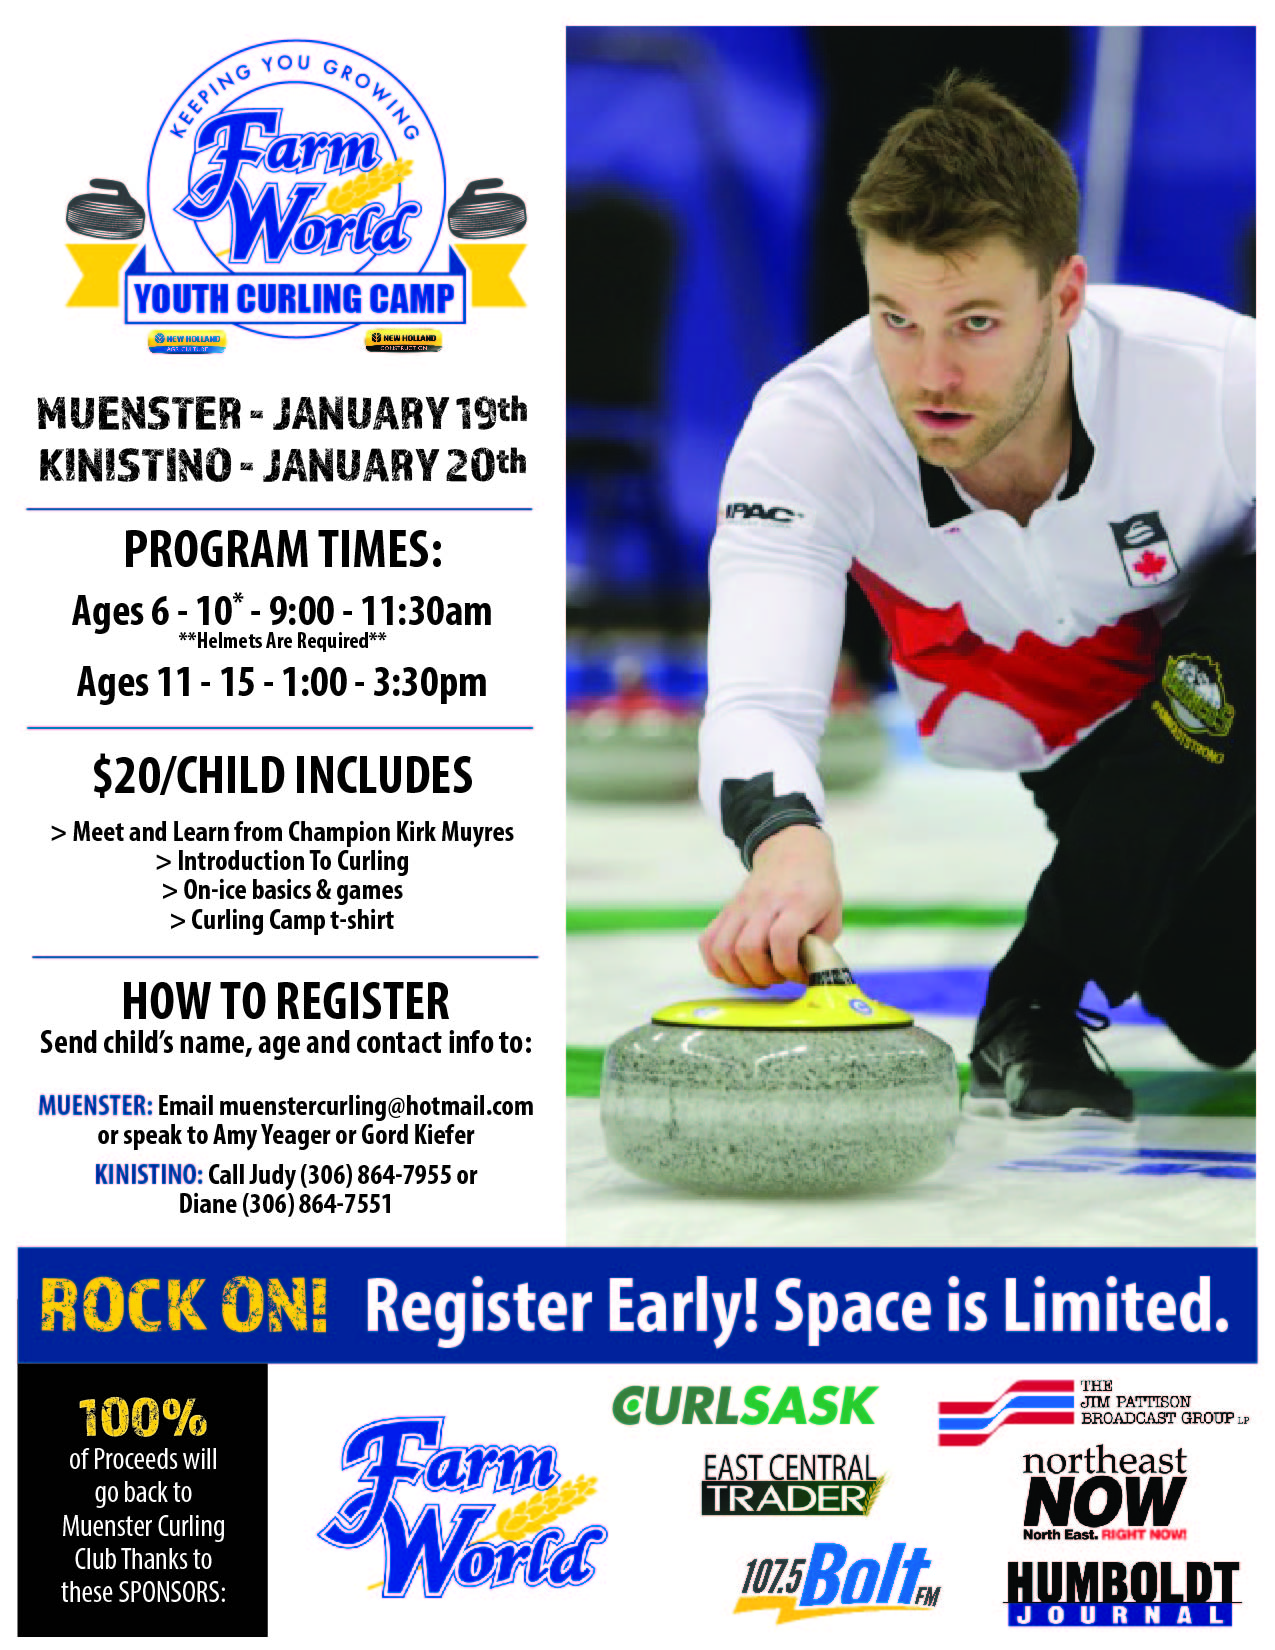 FARM WORLD YOUTH CURLING CAMP - Image 1